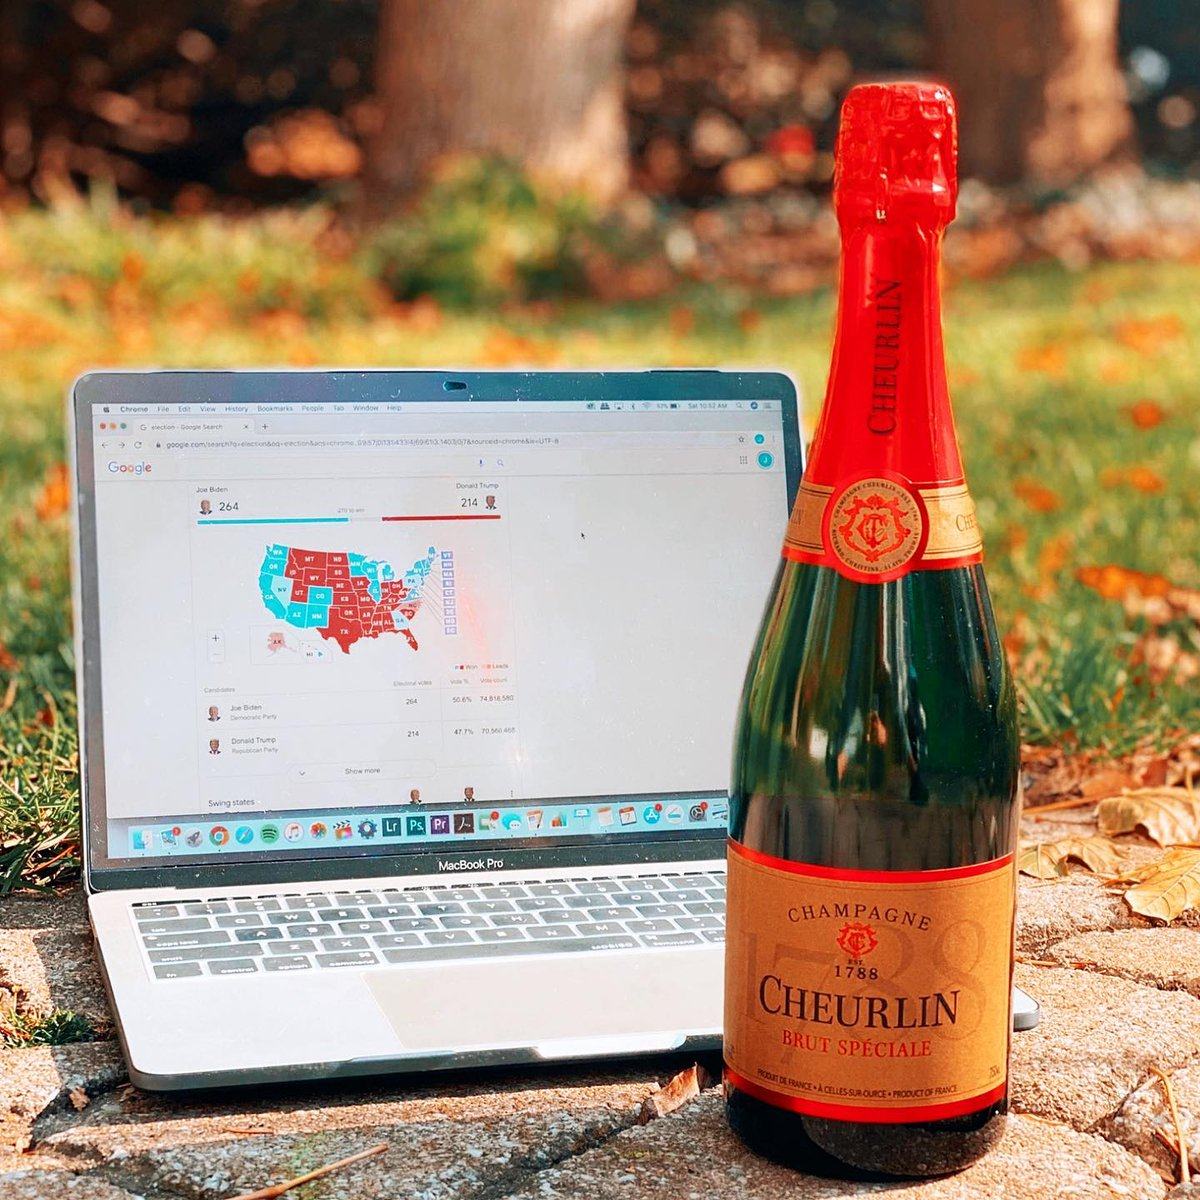 While we wait, we might as well drink. #Cheurlin1788 #Election2020